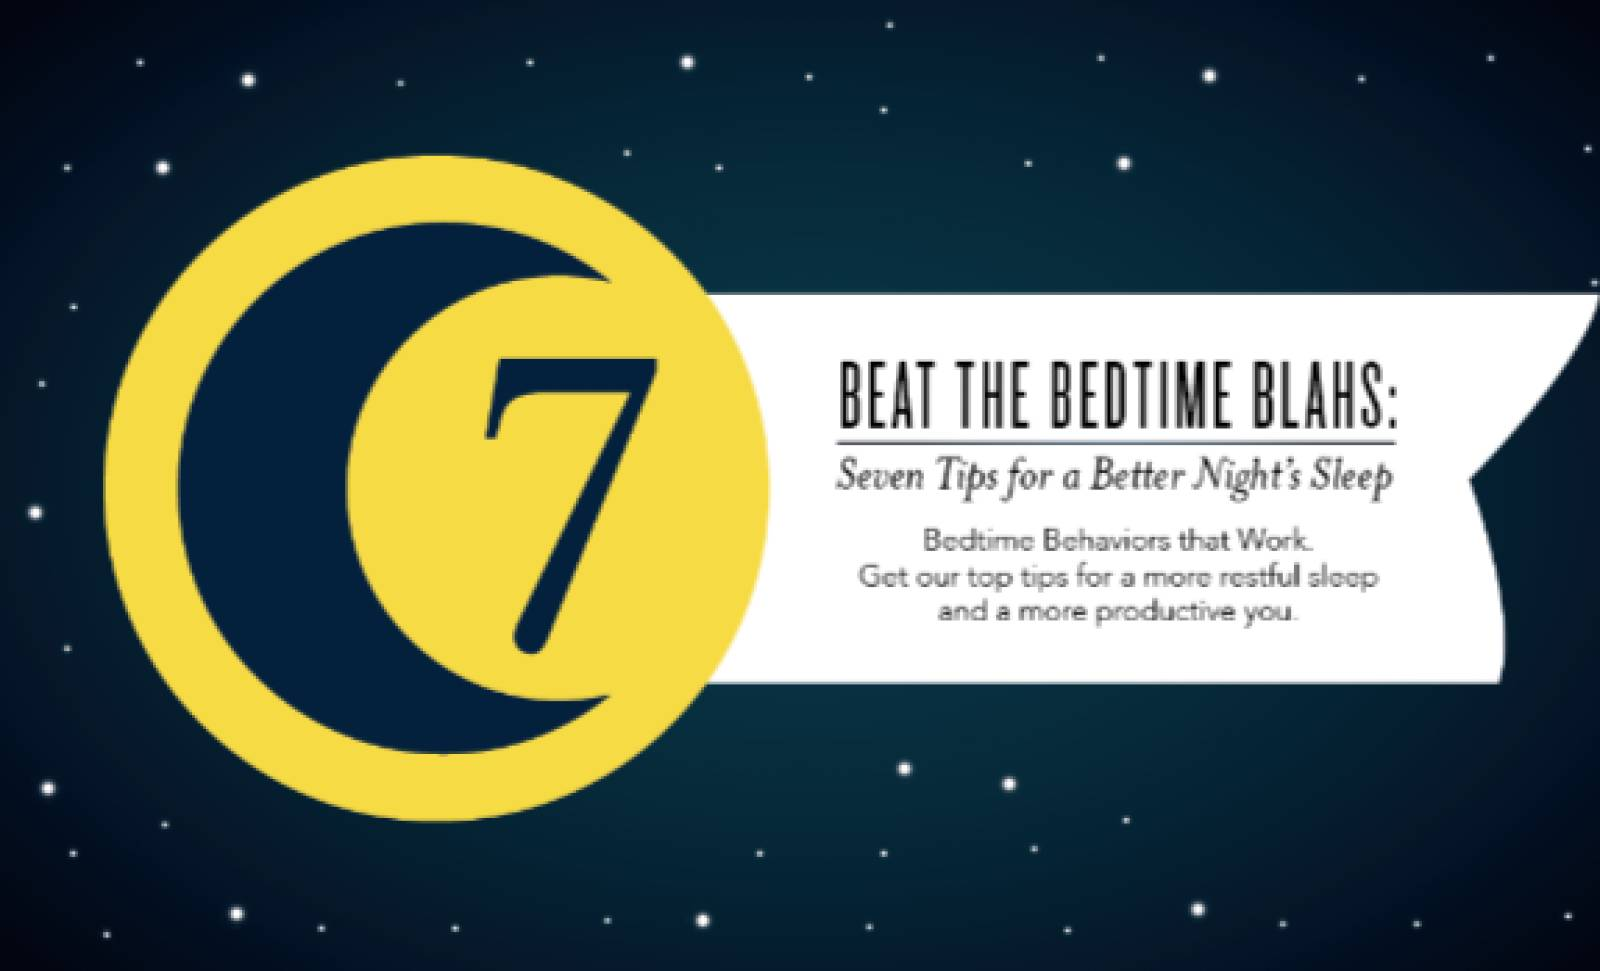 Beat the Bedtime Blahs: Seven Tips for a Better Night's Sleep